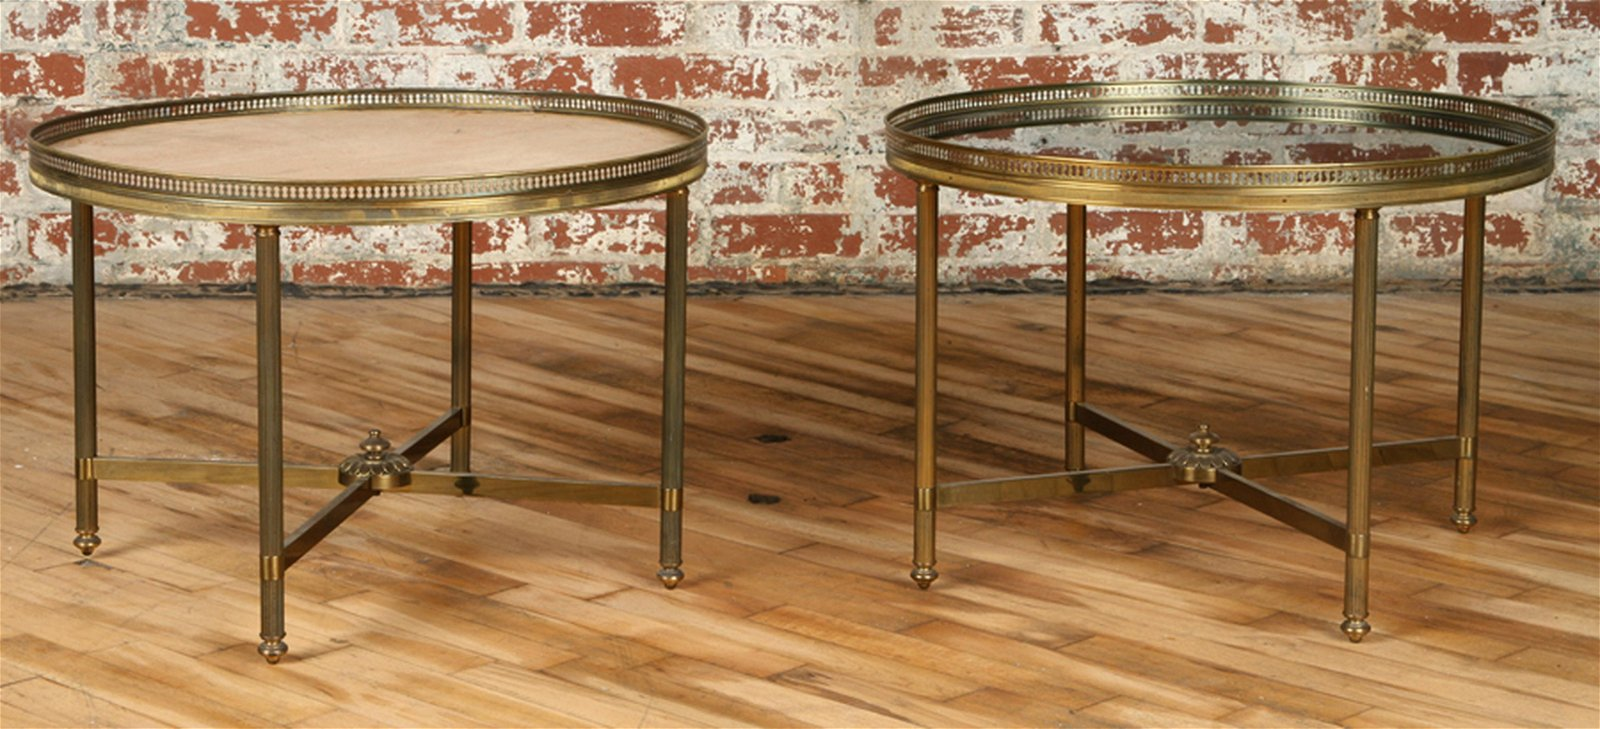 PAIR NEOCLASSICAL STYLE BRONZE END TABLES C.1950